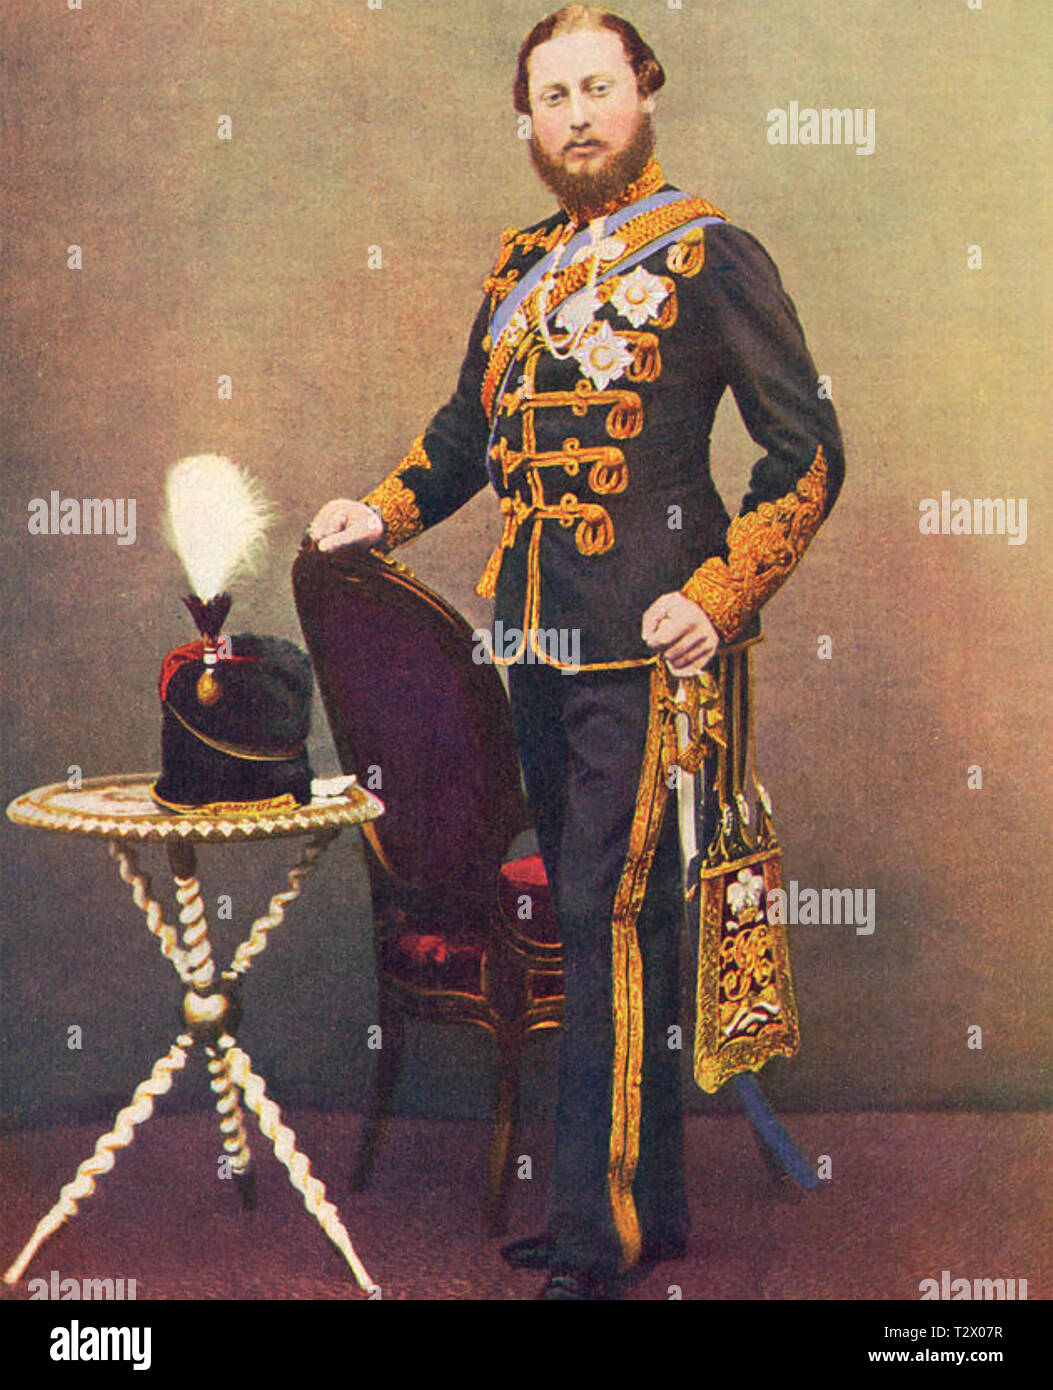 EDWARD VII (1841-1910) about 1860 as Prince of Wales - Stock Image